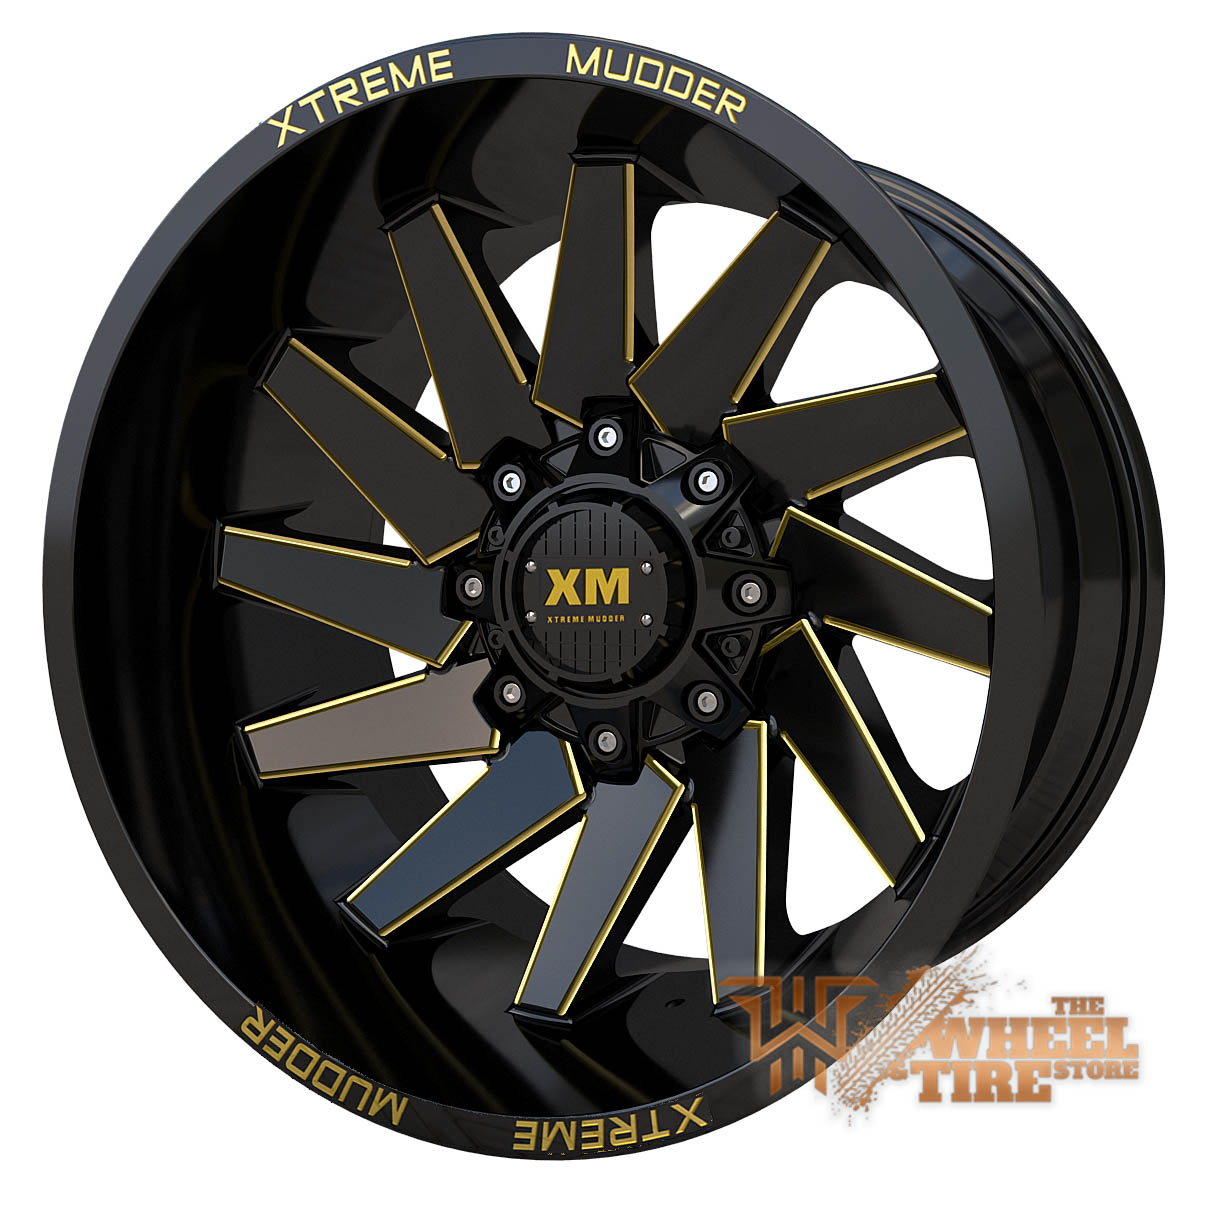 XTREME MUDDER XM-344 Wheel in Gloss Black Yellow Milled (Set of 4)